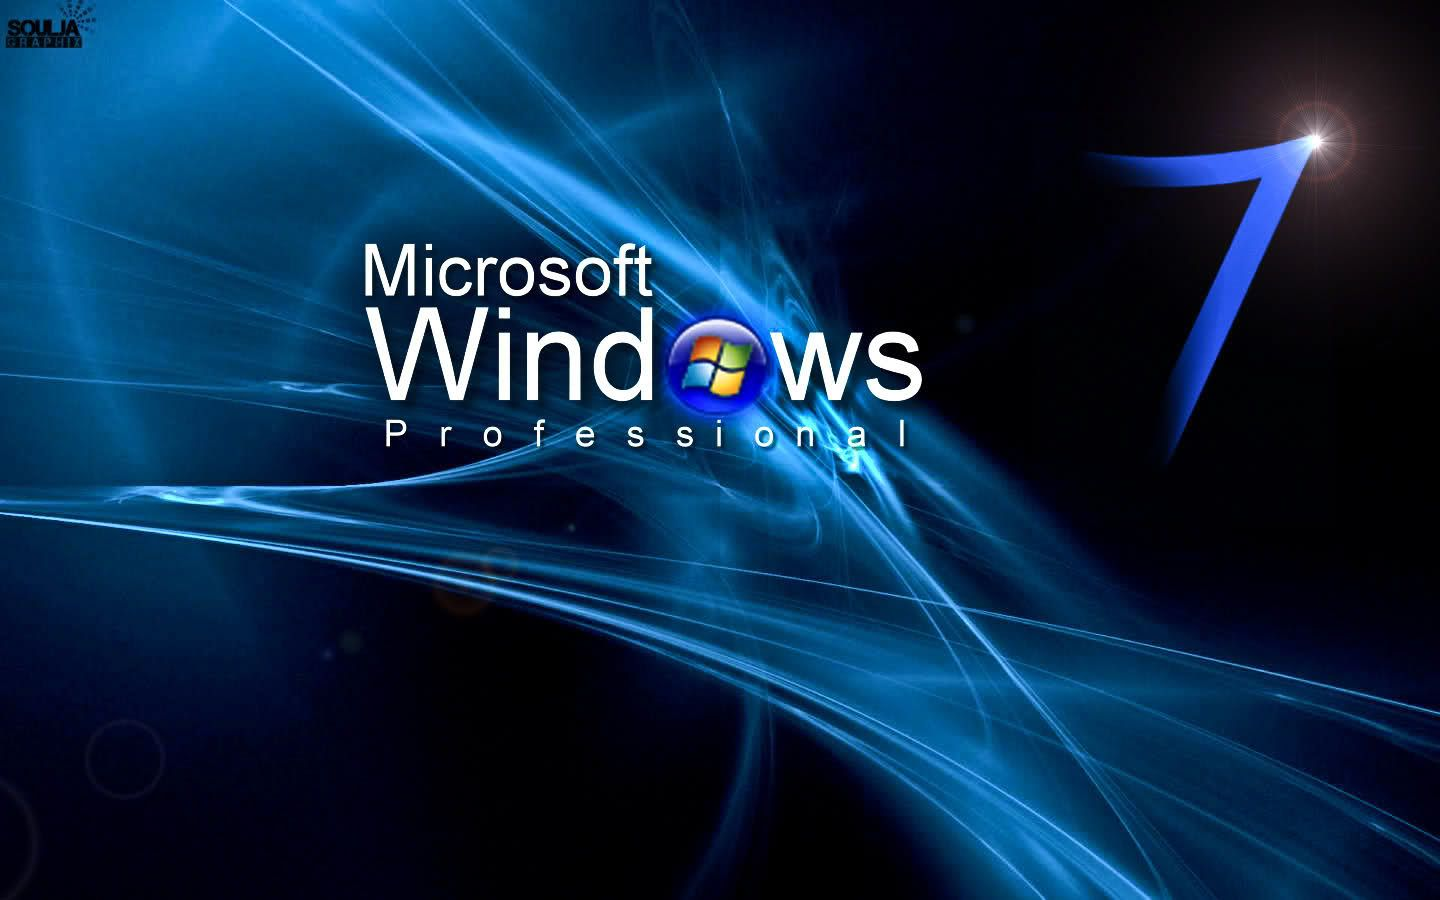 Technology Management Image: Windows 7 Professional Wallpapers